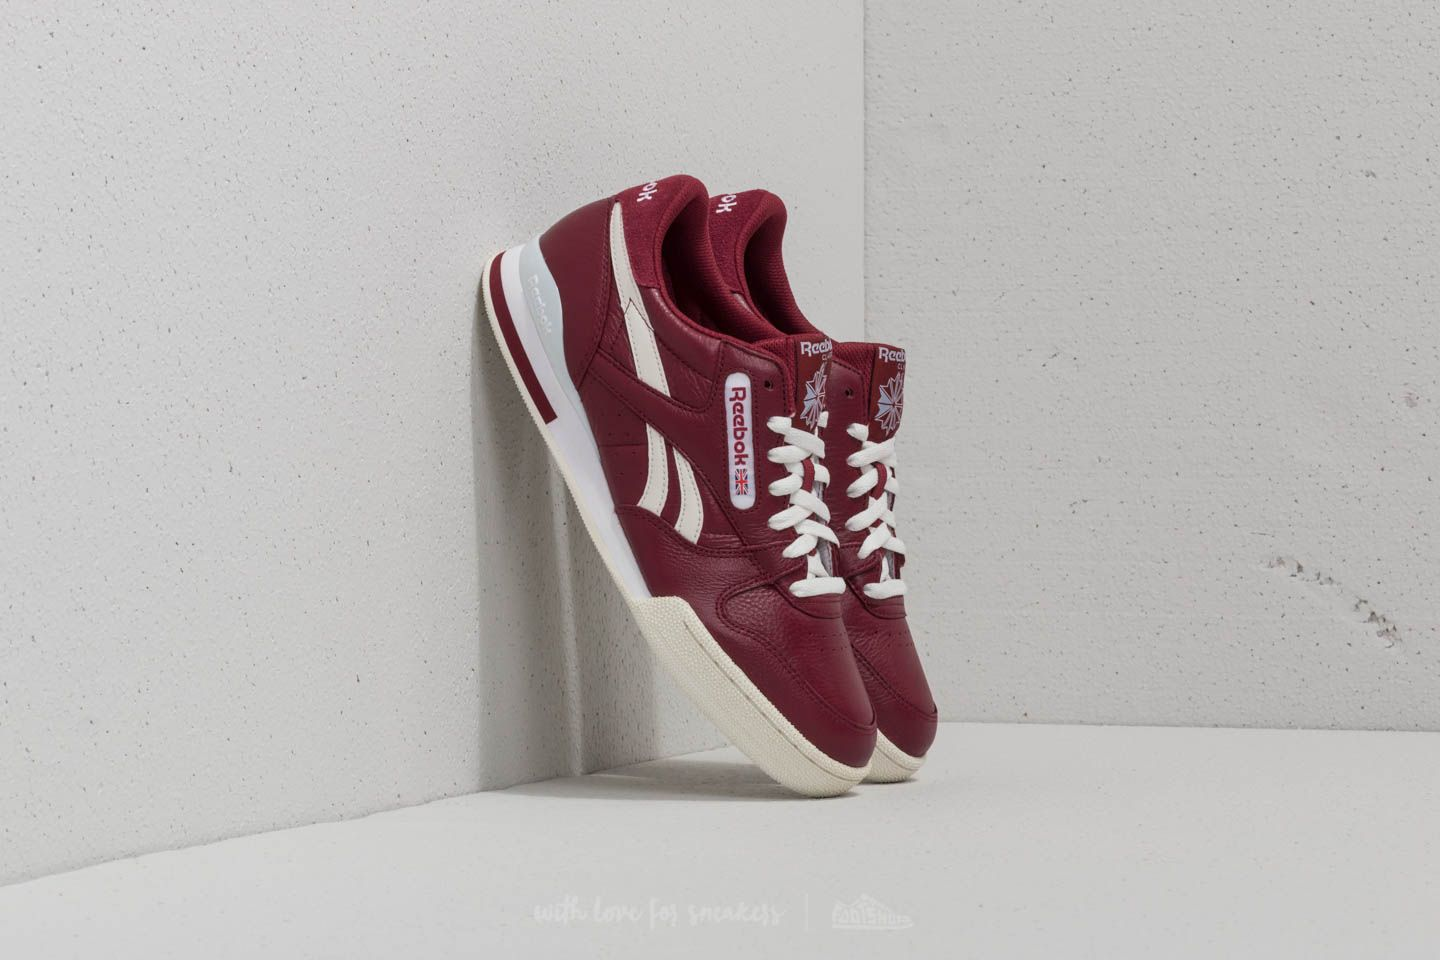 Reebok Phase 1 Pro DL Urban Maroon/ Cloud Grey